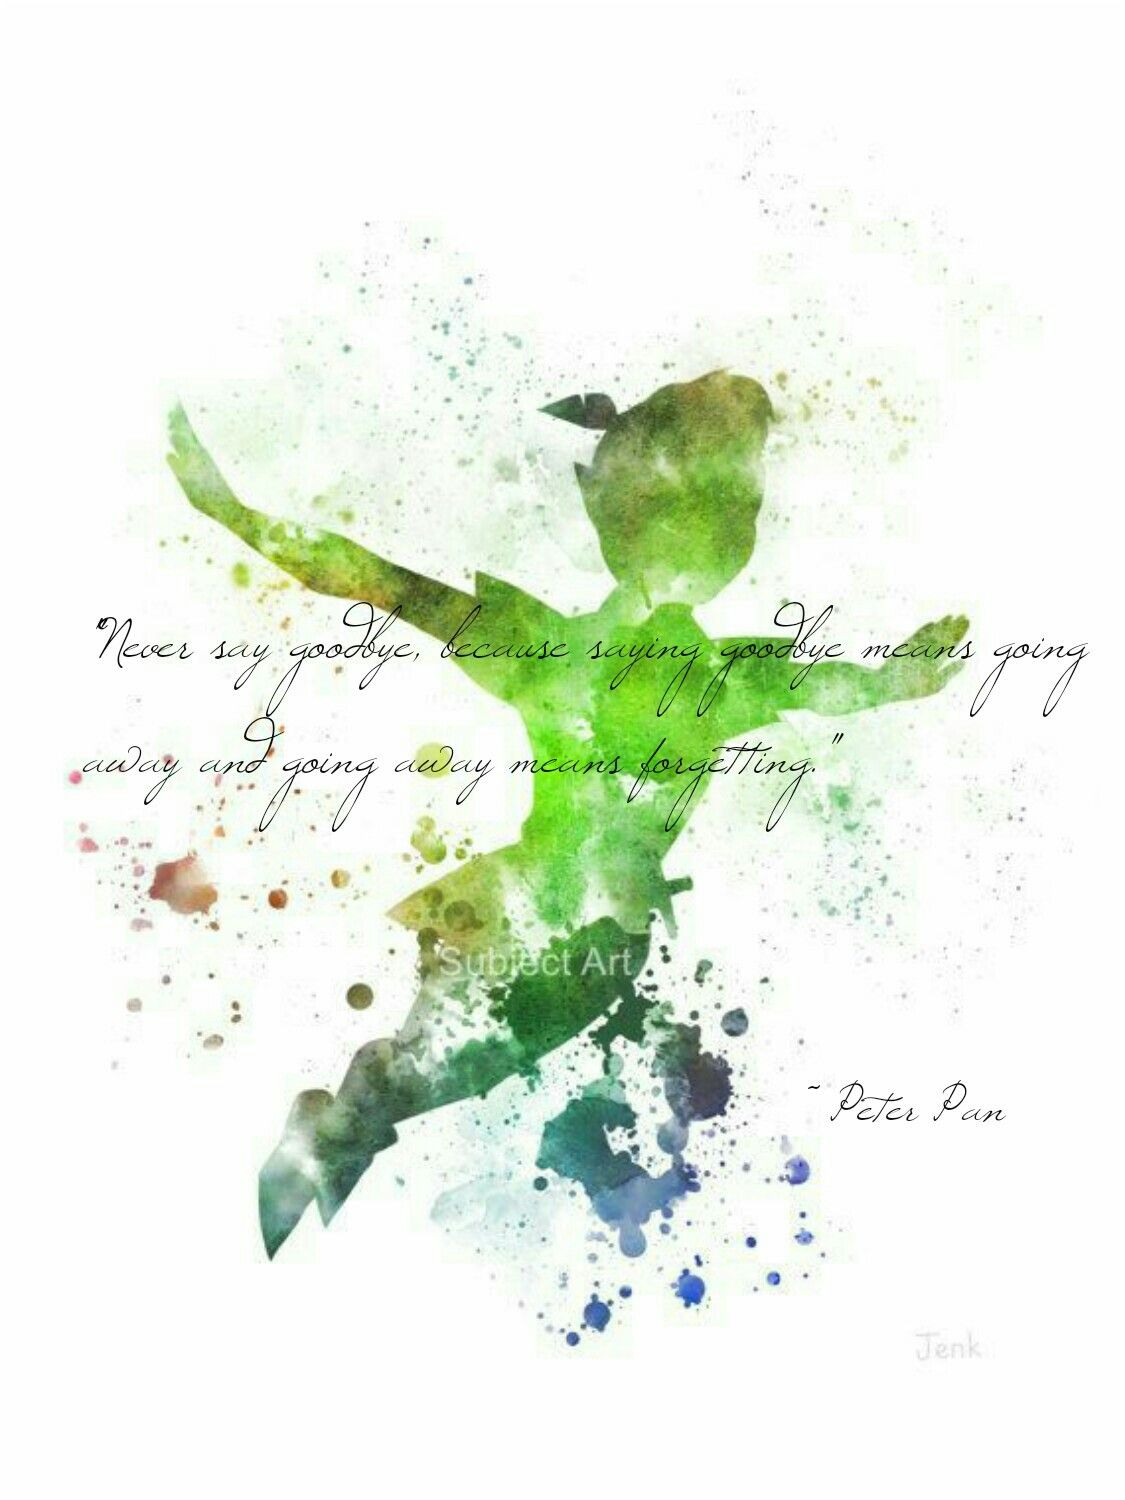 Peterpan Neverland Wendy Naseweiß Never Say Goodbye Because